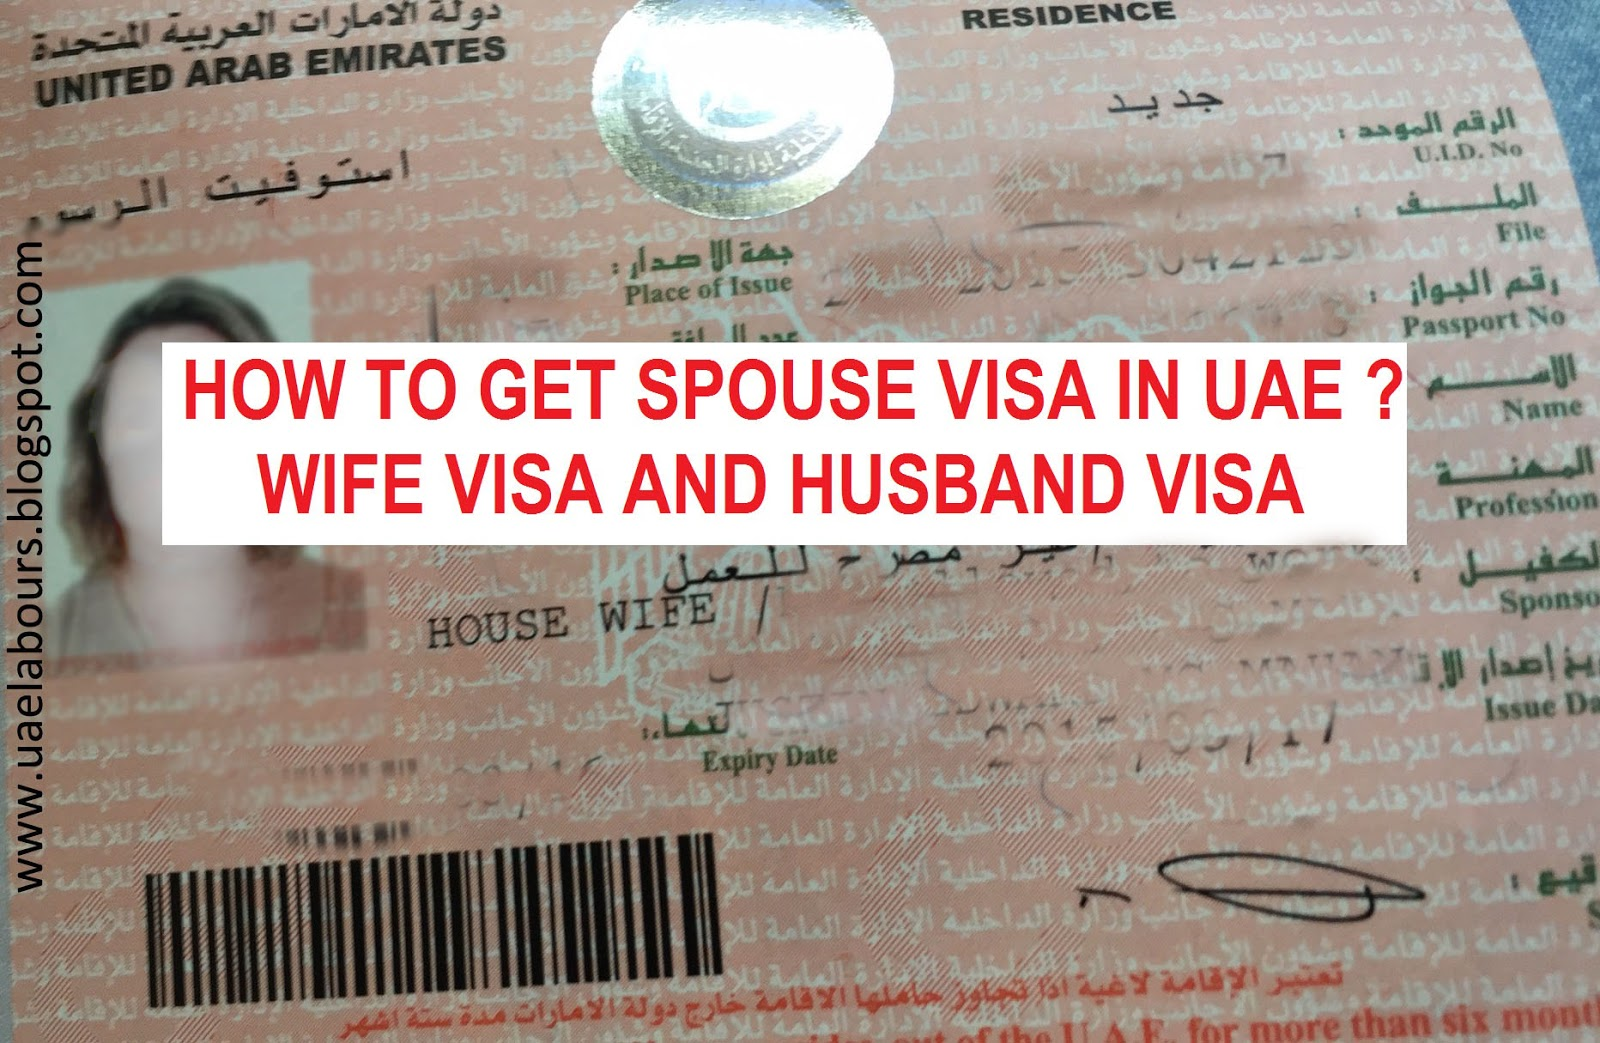 How to Get Spouse Visa in UAE 2016 New Rules - UAE LABOURS